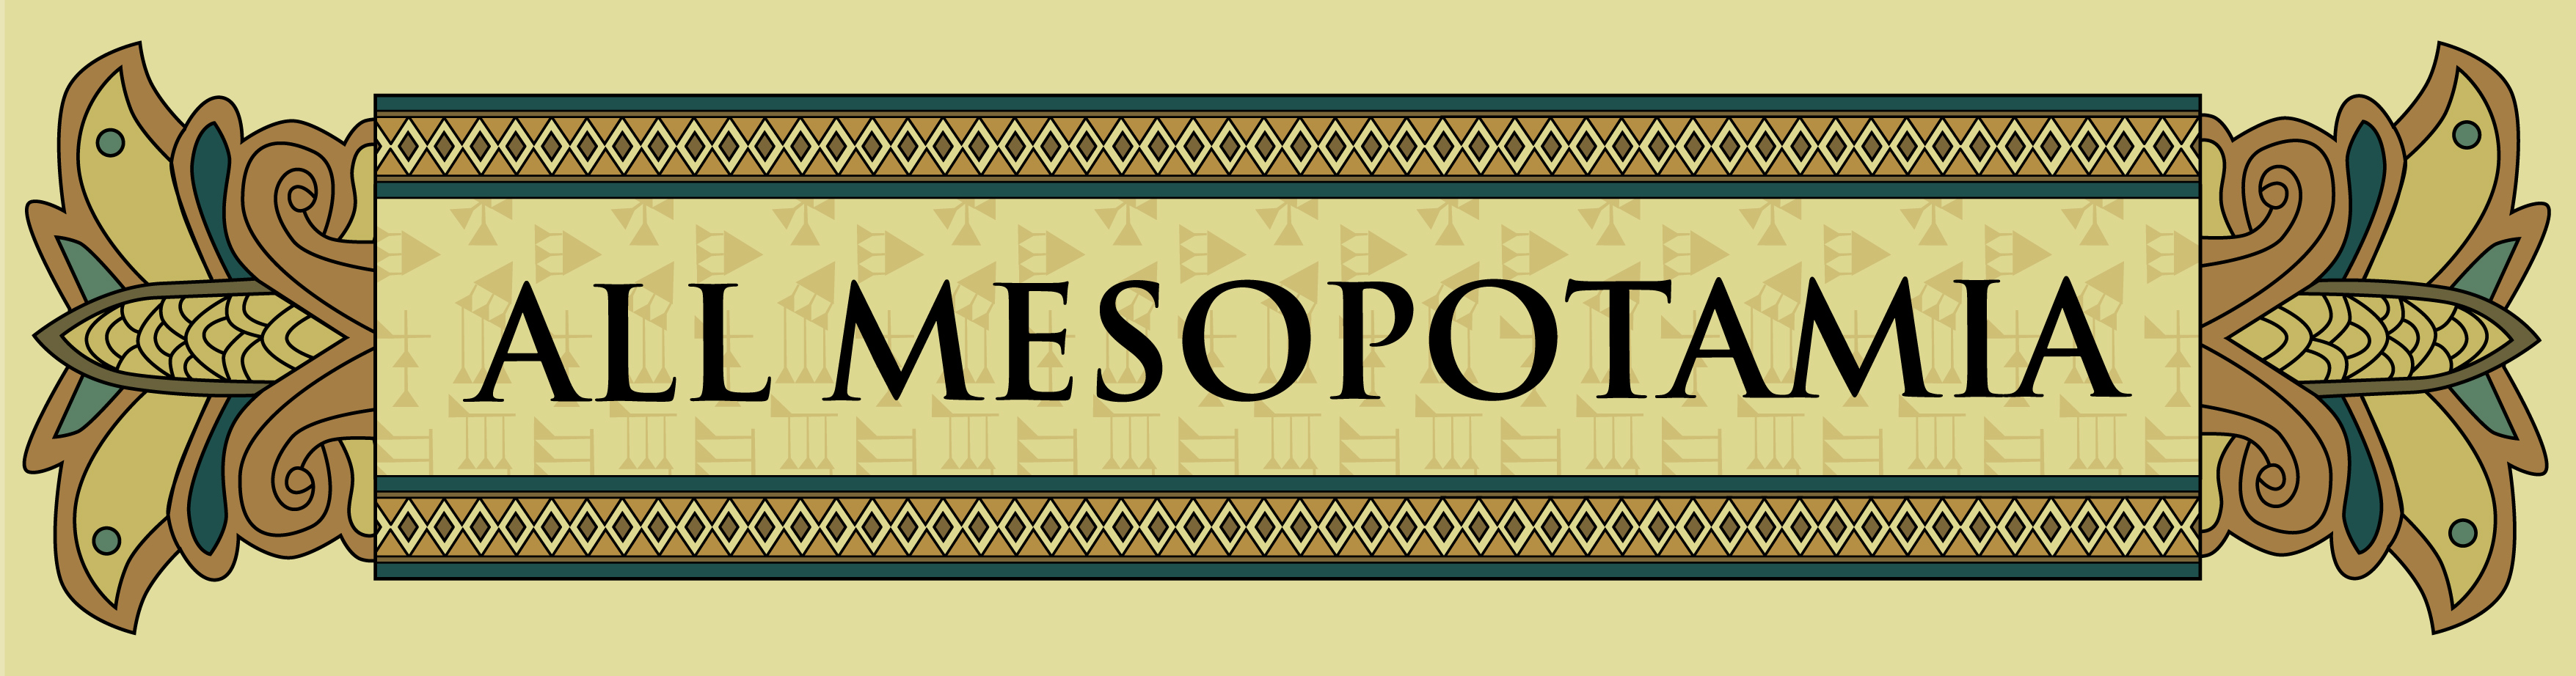 ALL MESOPOTAMIA